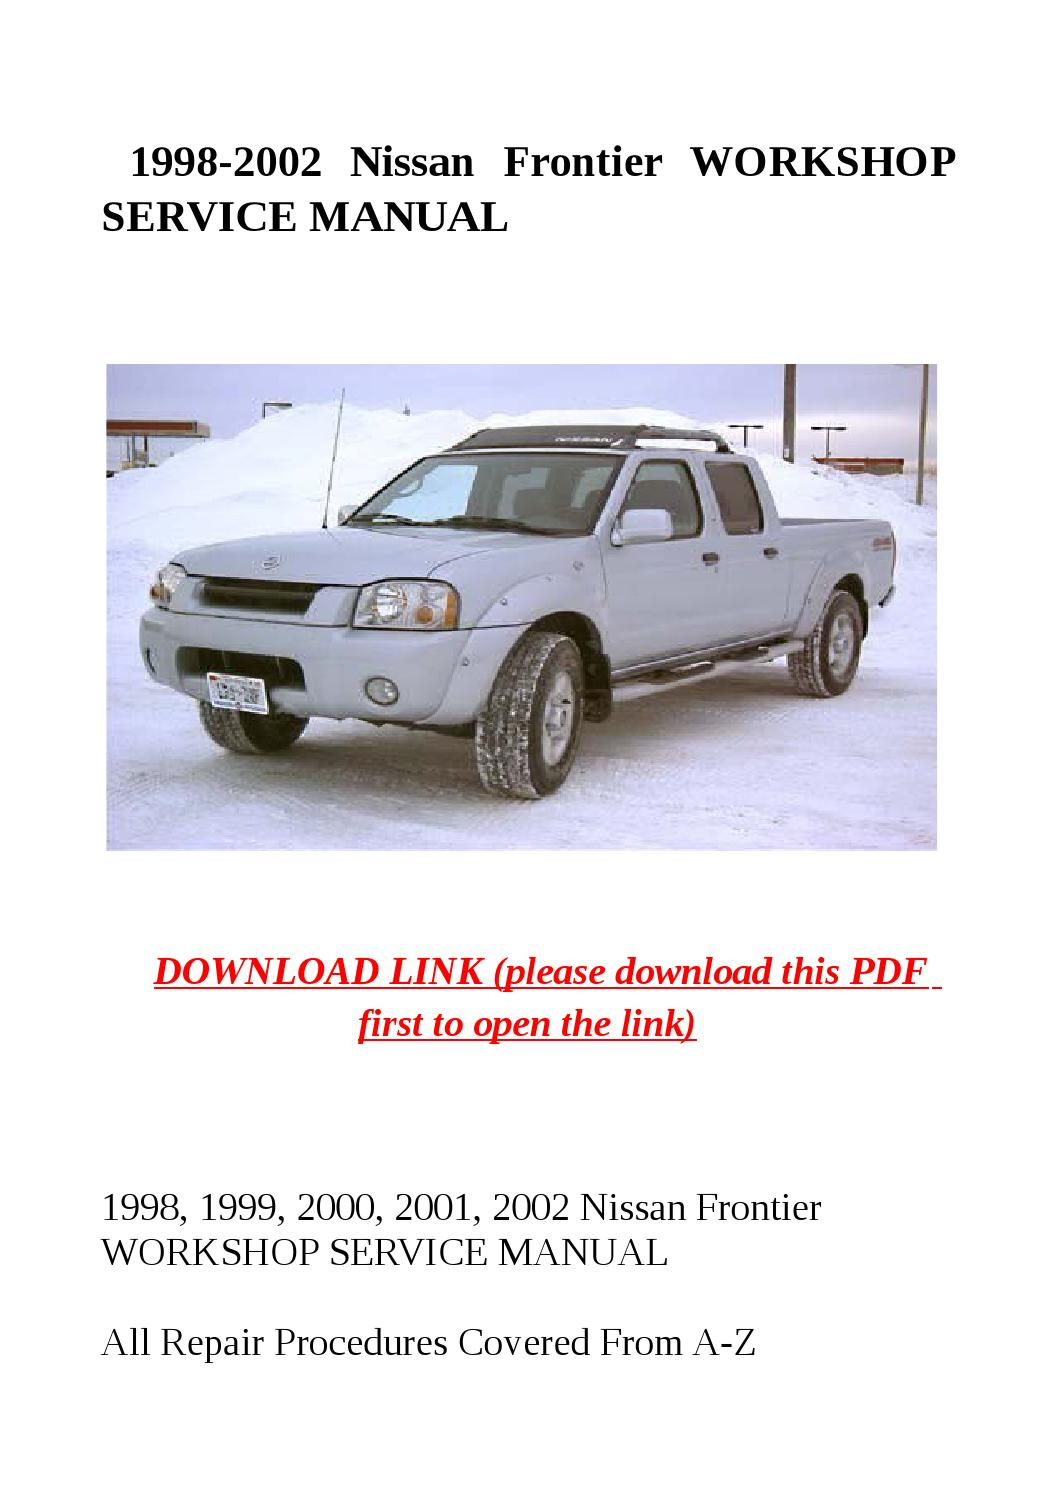 1998 2002 Nissan Frontier Workshop Service Manual By Jacky Dean Issuu Transmission Clutch Diagram Xterra Replace A